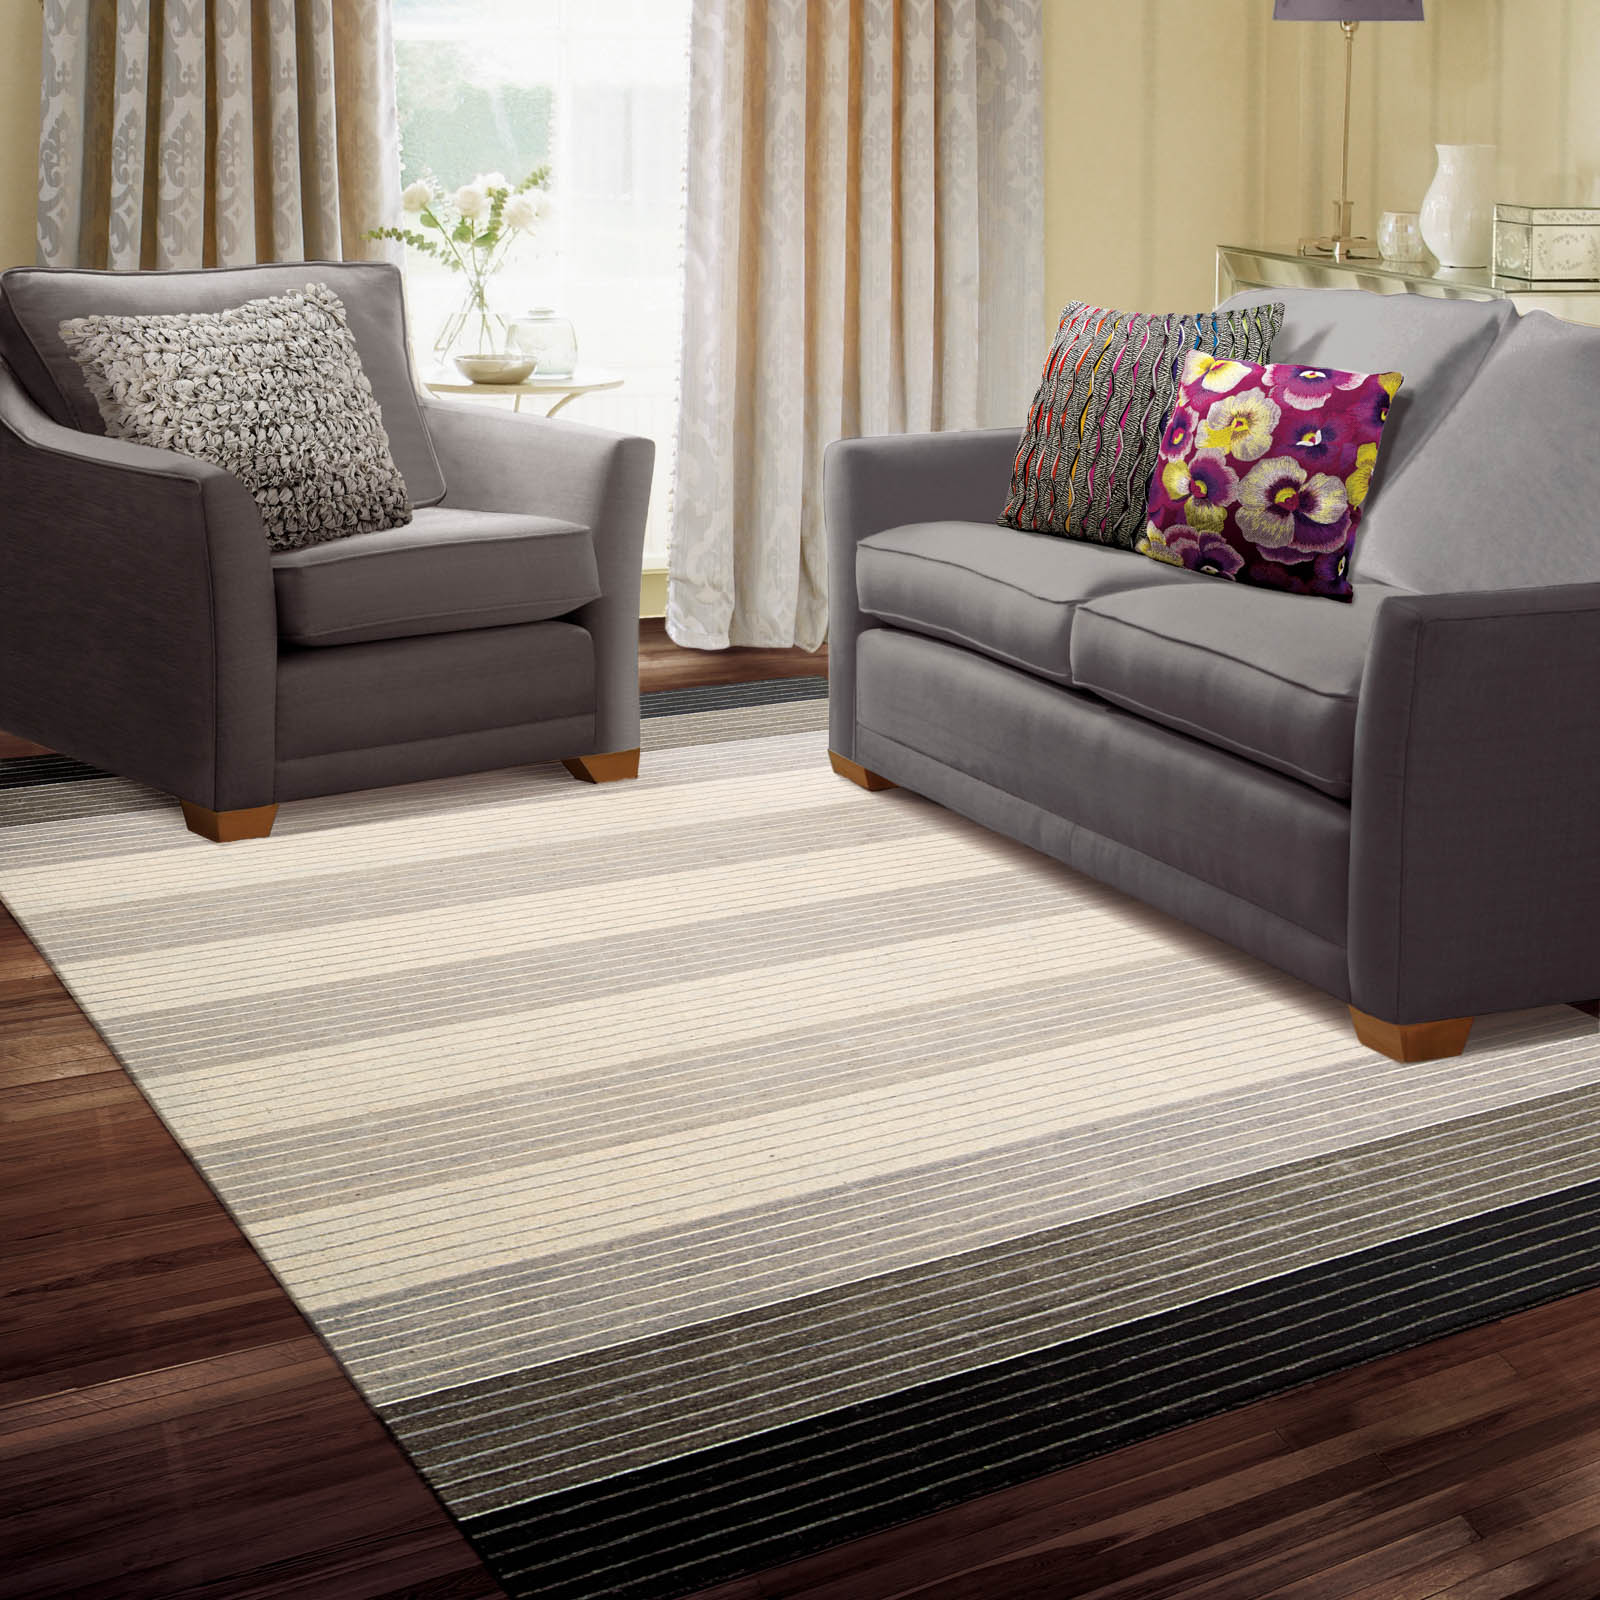 Kathy Ireland Griot Rugs KI802 Pepper